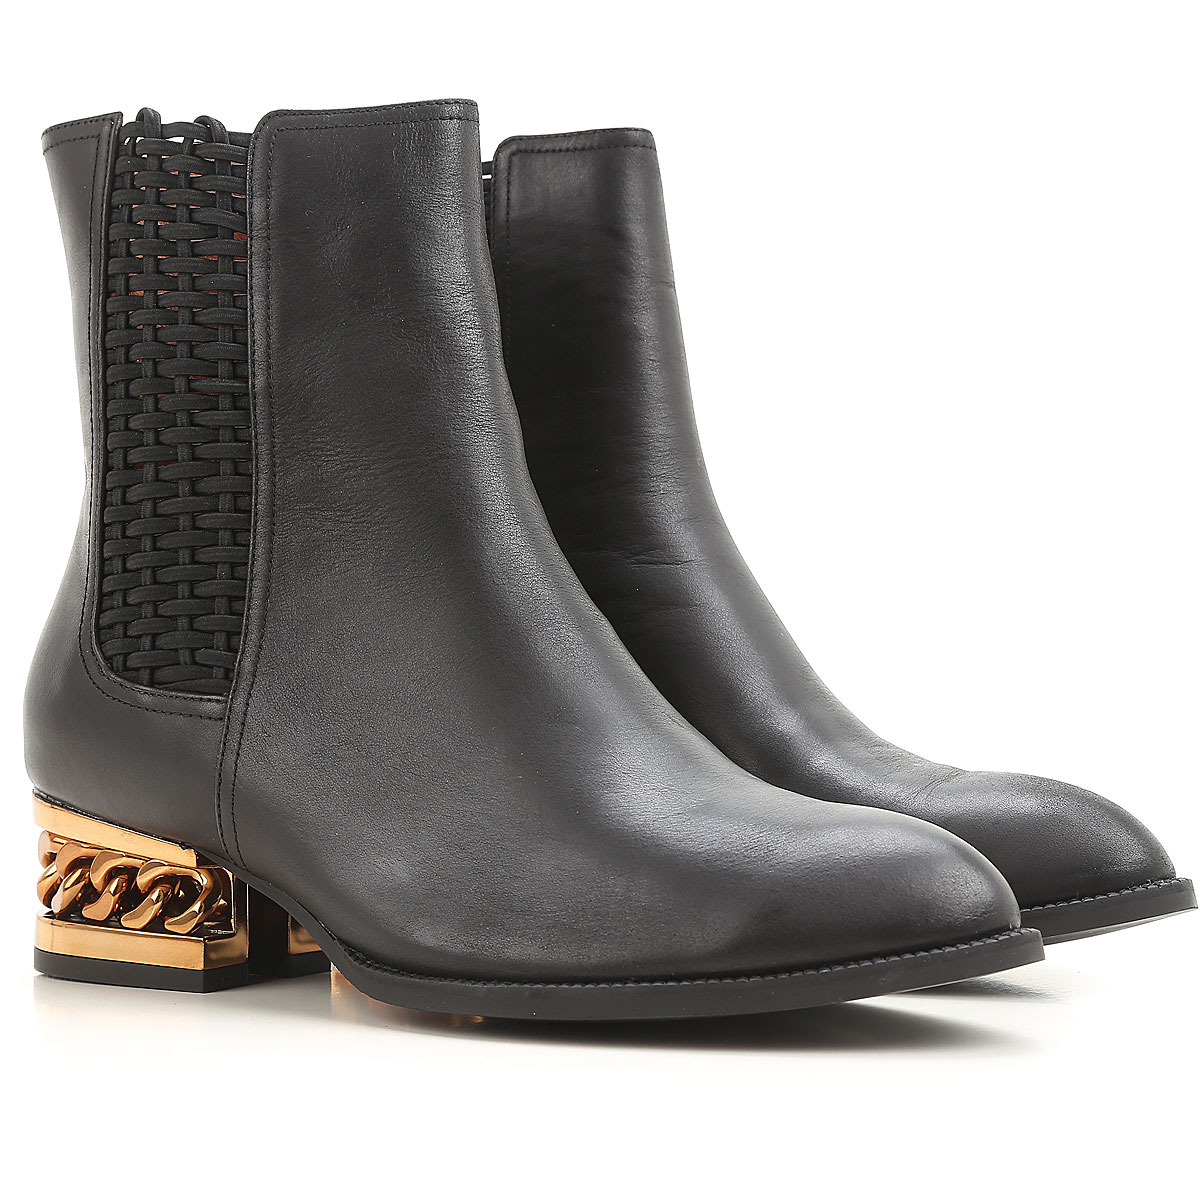 Image of Jeffrey Campbell Boots for Women, Booties On Sale in Outlet, Black, Leather, 2017, 7 8